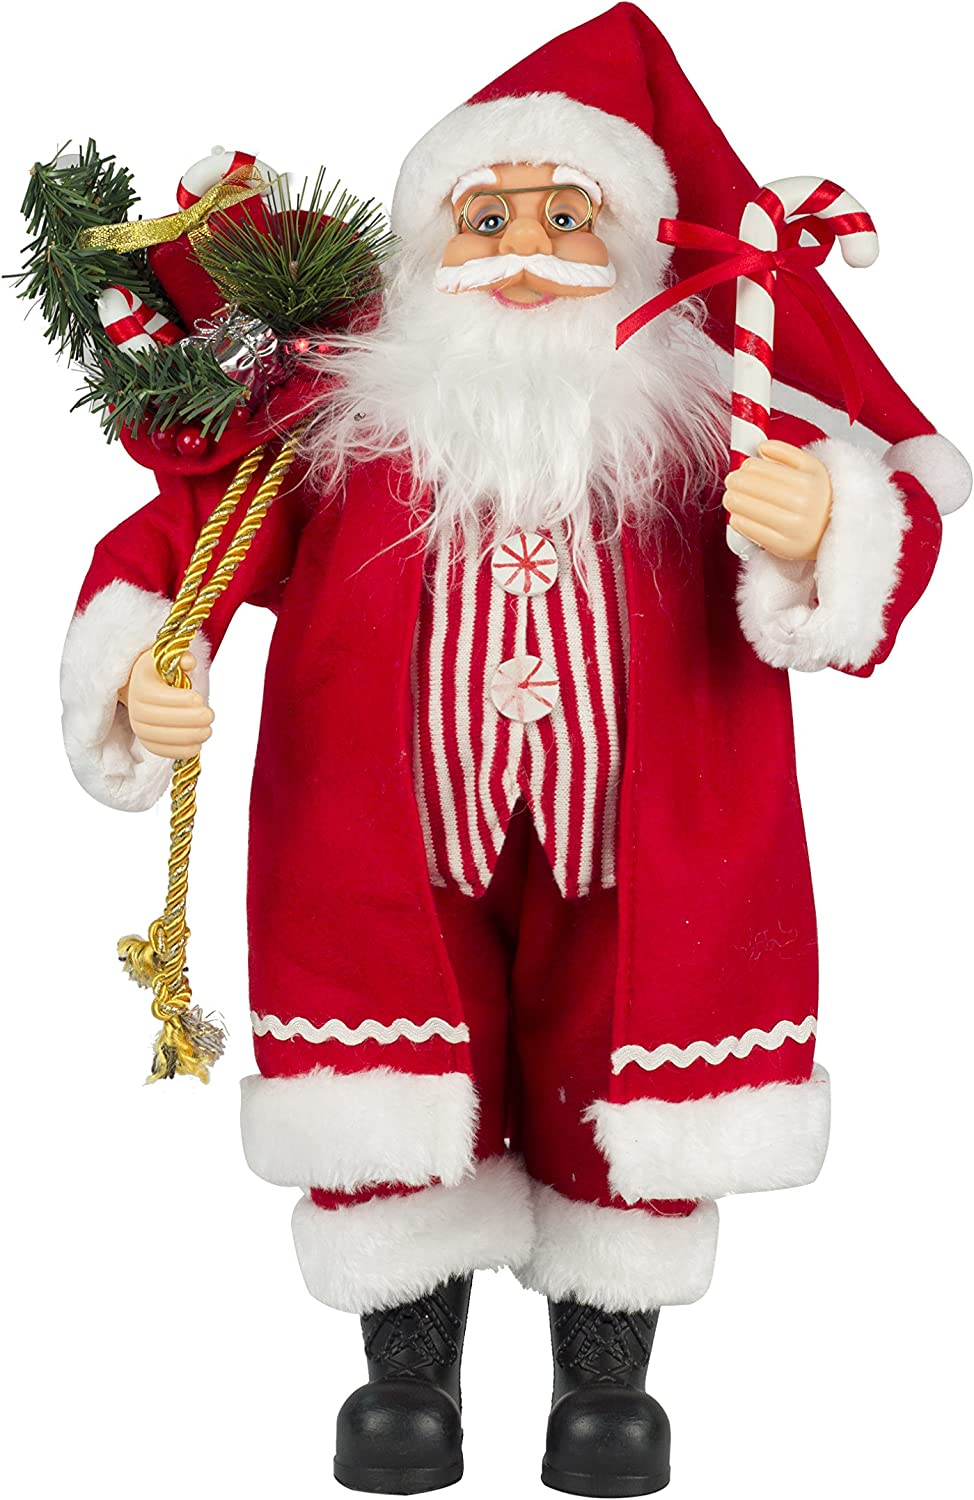 """Queens of Christmas Decorative Claus Figurine Santa, 18"""", Red and White"""